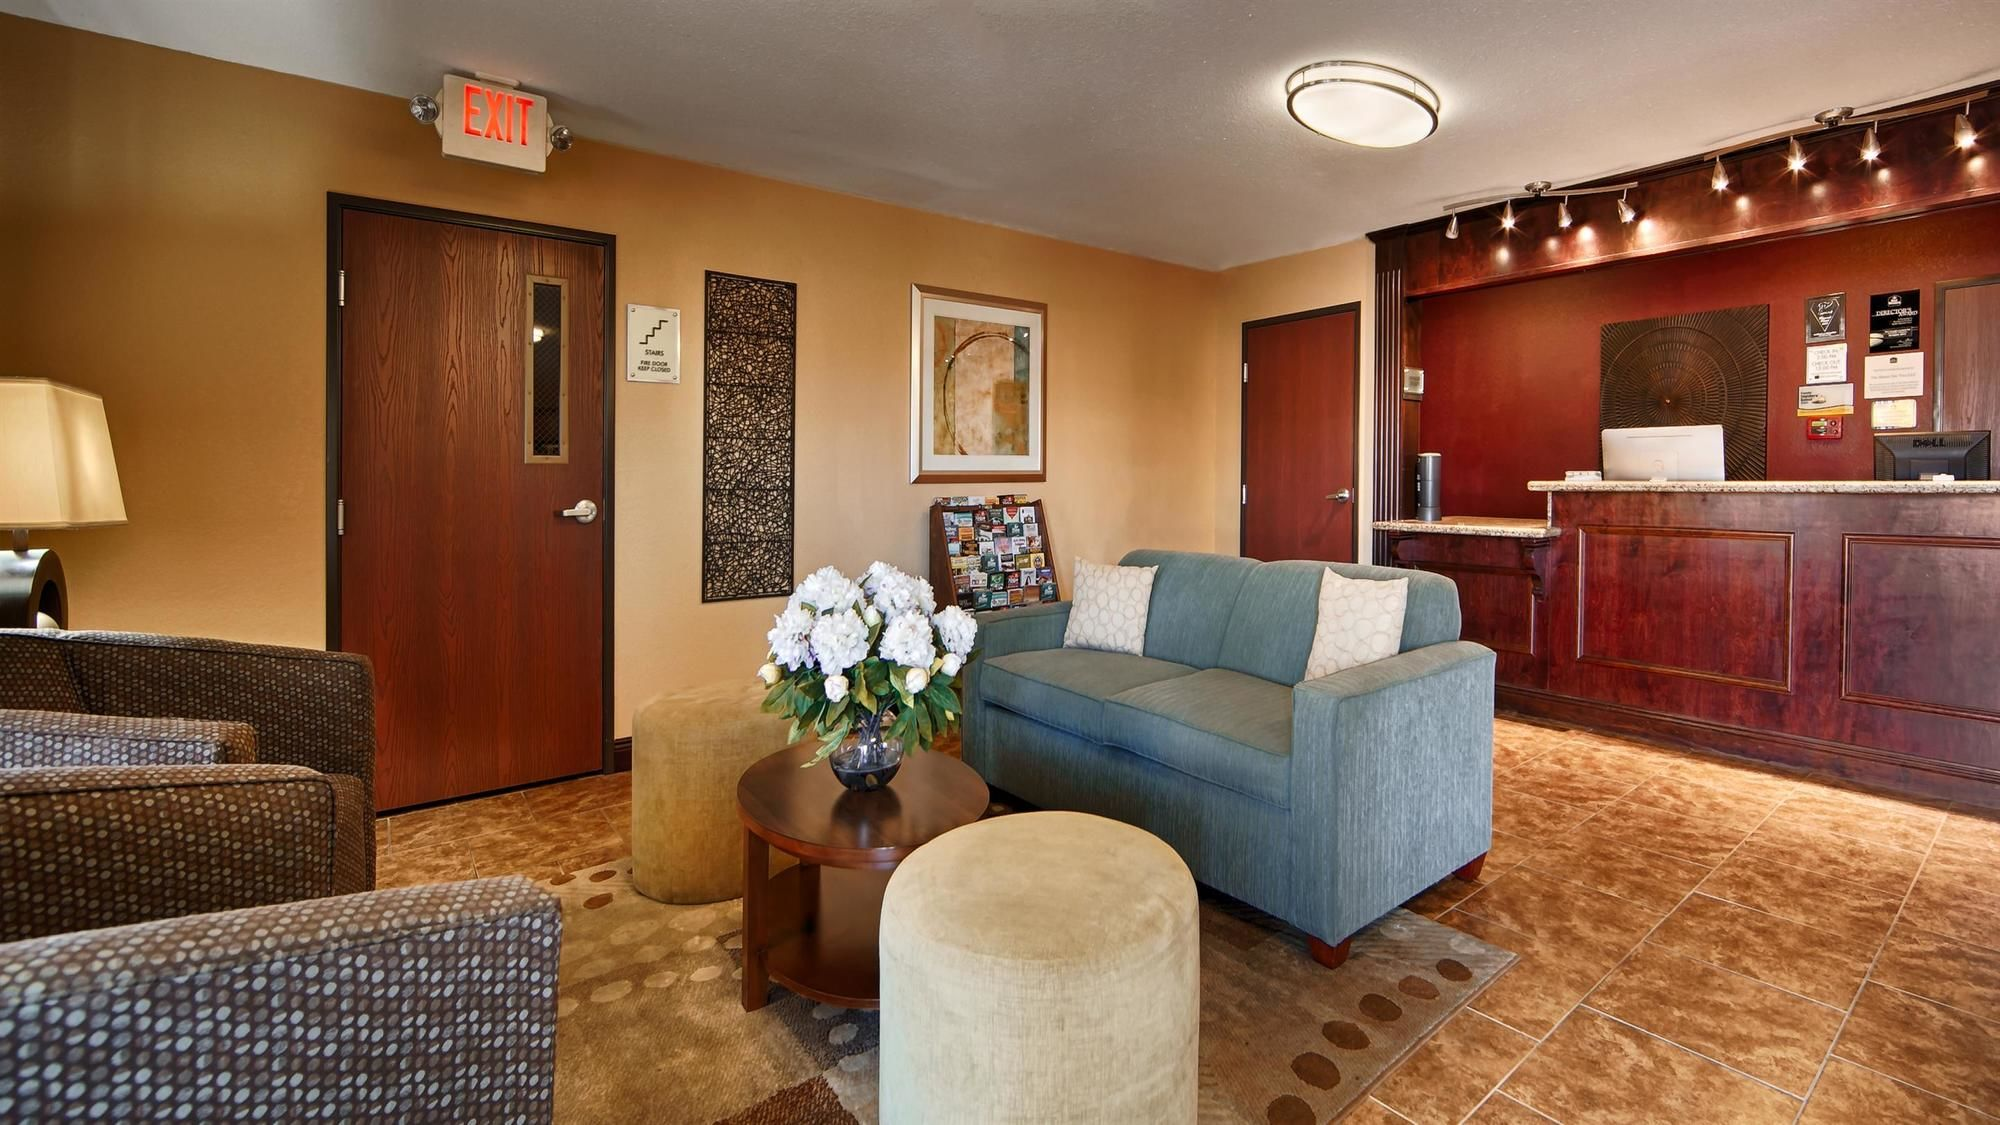 Lafayette Hotel Coupons for Lafayette, Louisiana - FreeHotelCoupons.com